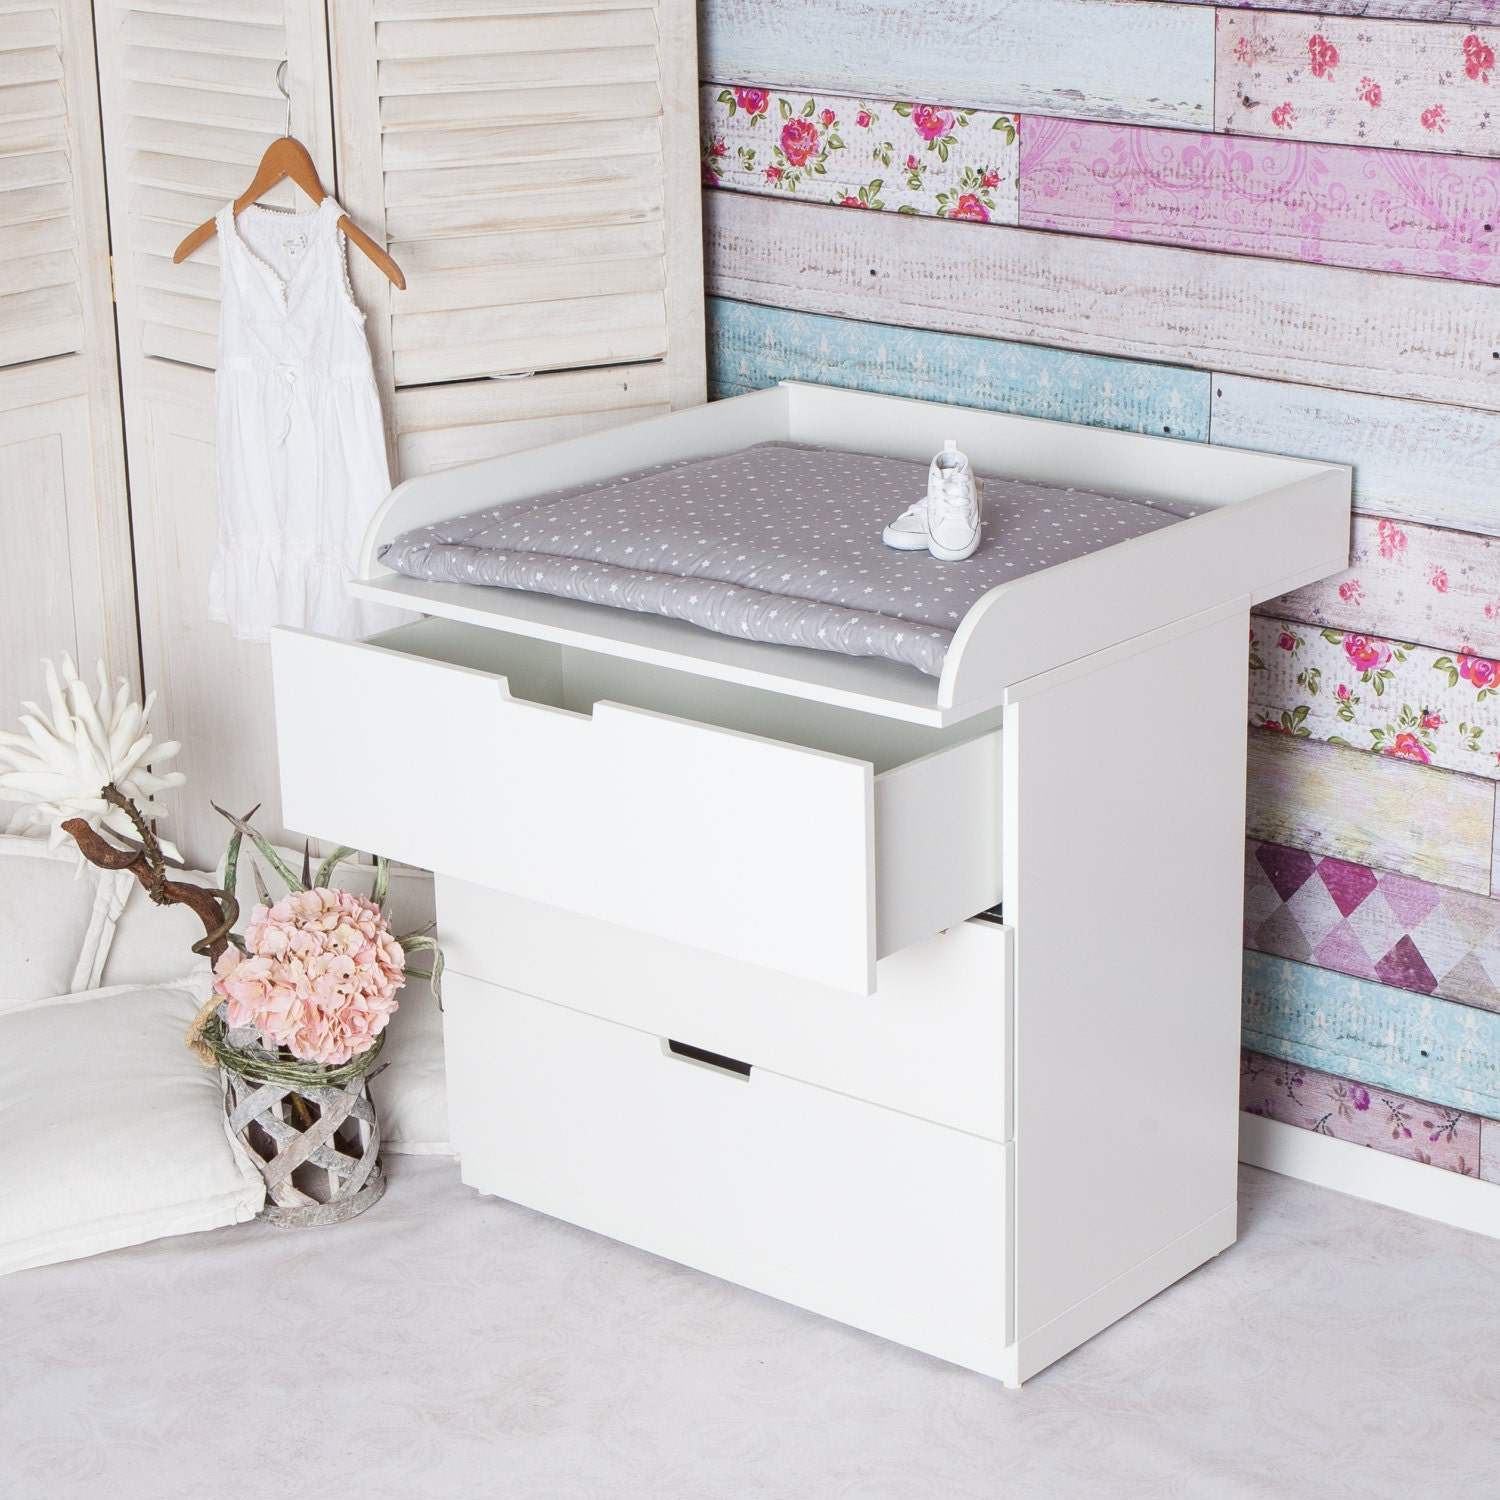 XS ExtraRound Changing table top for IKEA Nordli dresser with